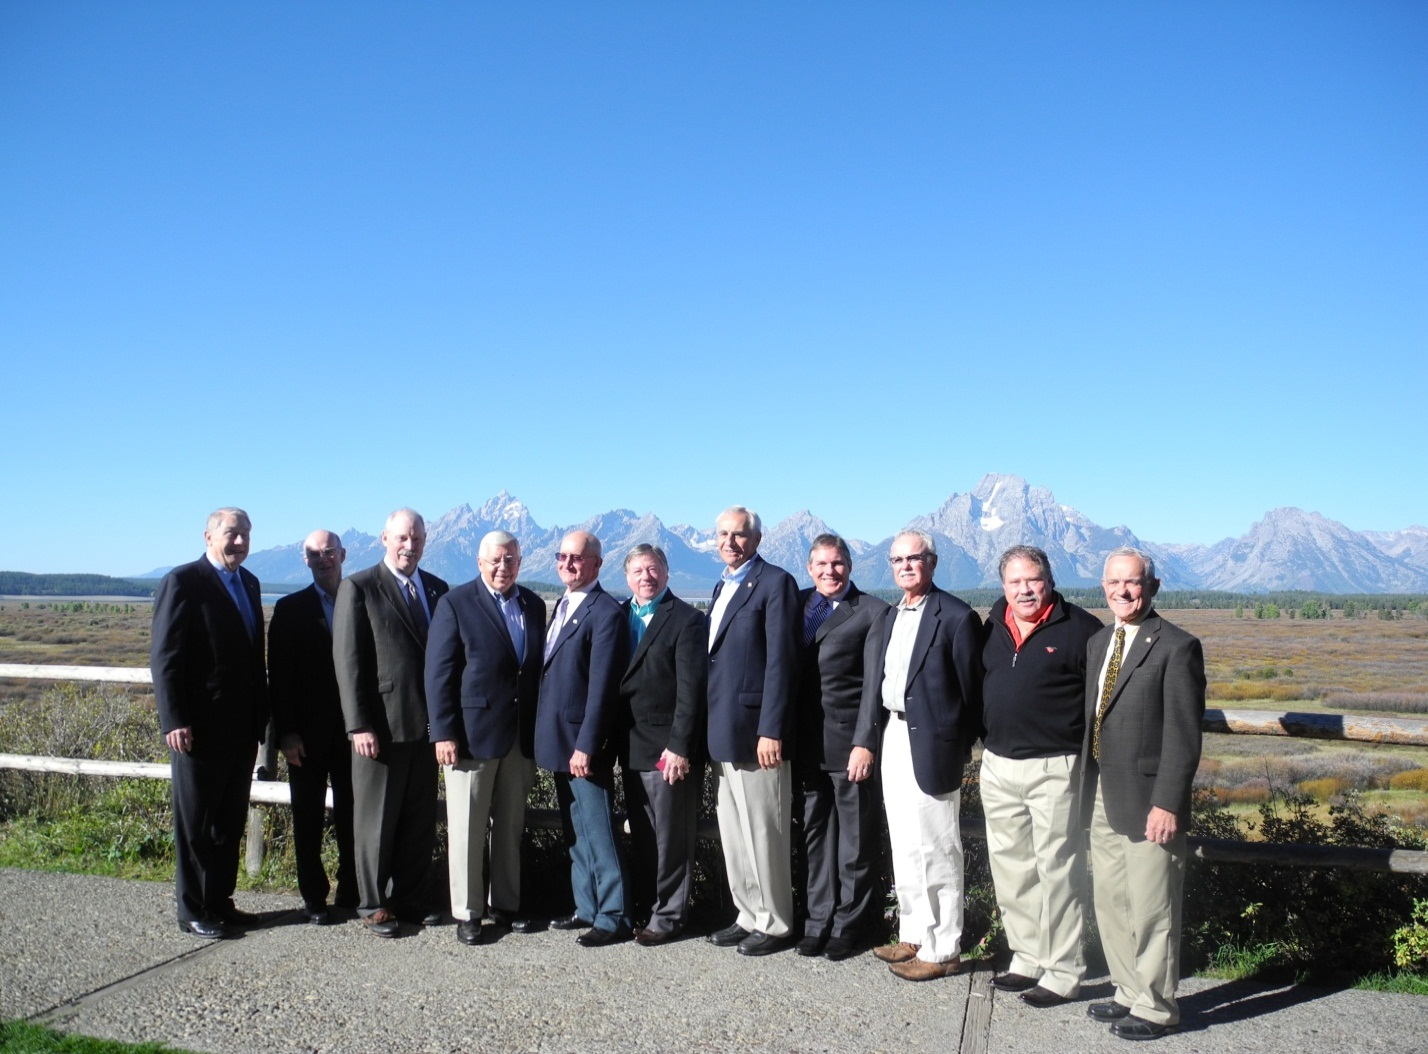 The leadership of the Energy Council and members of the Wyoming Legislature join Alaska Senator Bert Stedman, Chairman of The Energy Council (third from left), in welcoming U.S. Senator Mike Enzi of Wyoming to the Council's 2013 Annual Meeting. Senator Enzi (fourth from left), delivered the Keynote Address at the Annual Meeting.